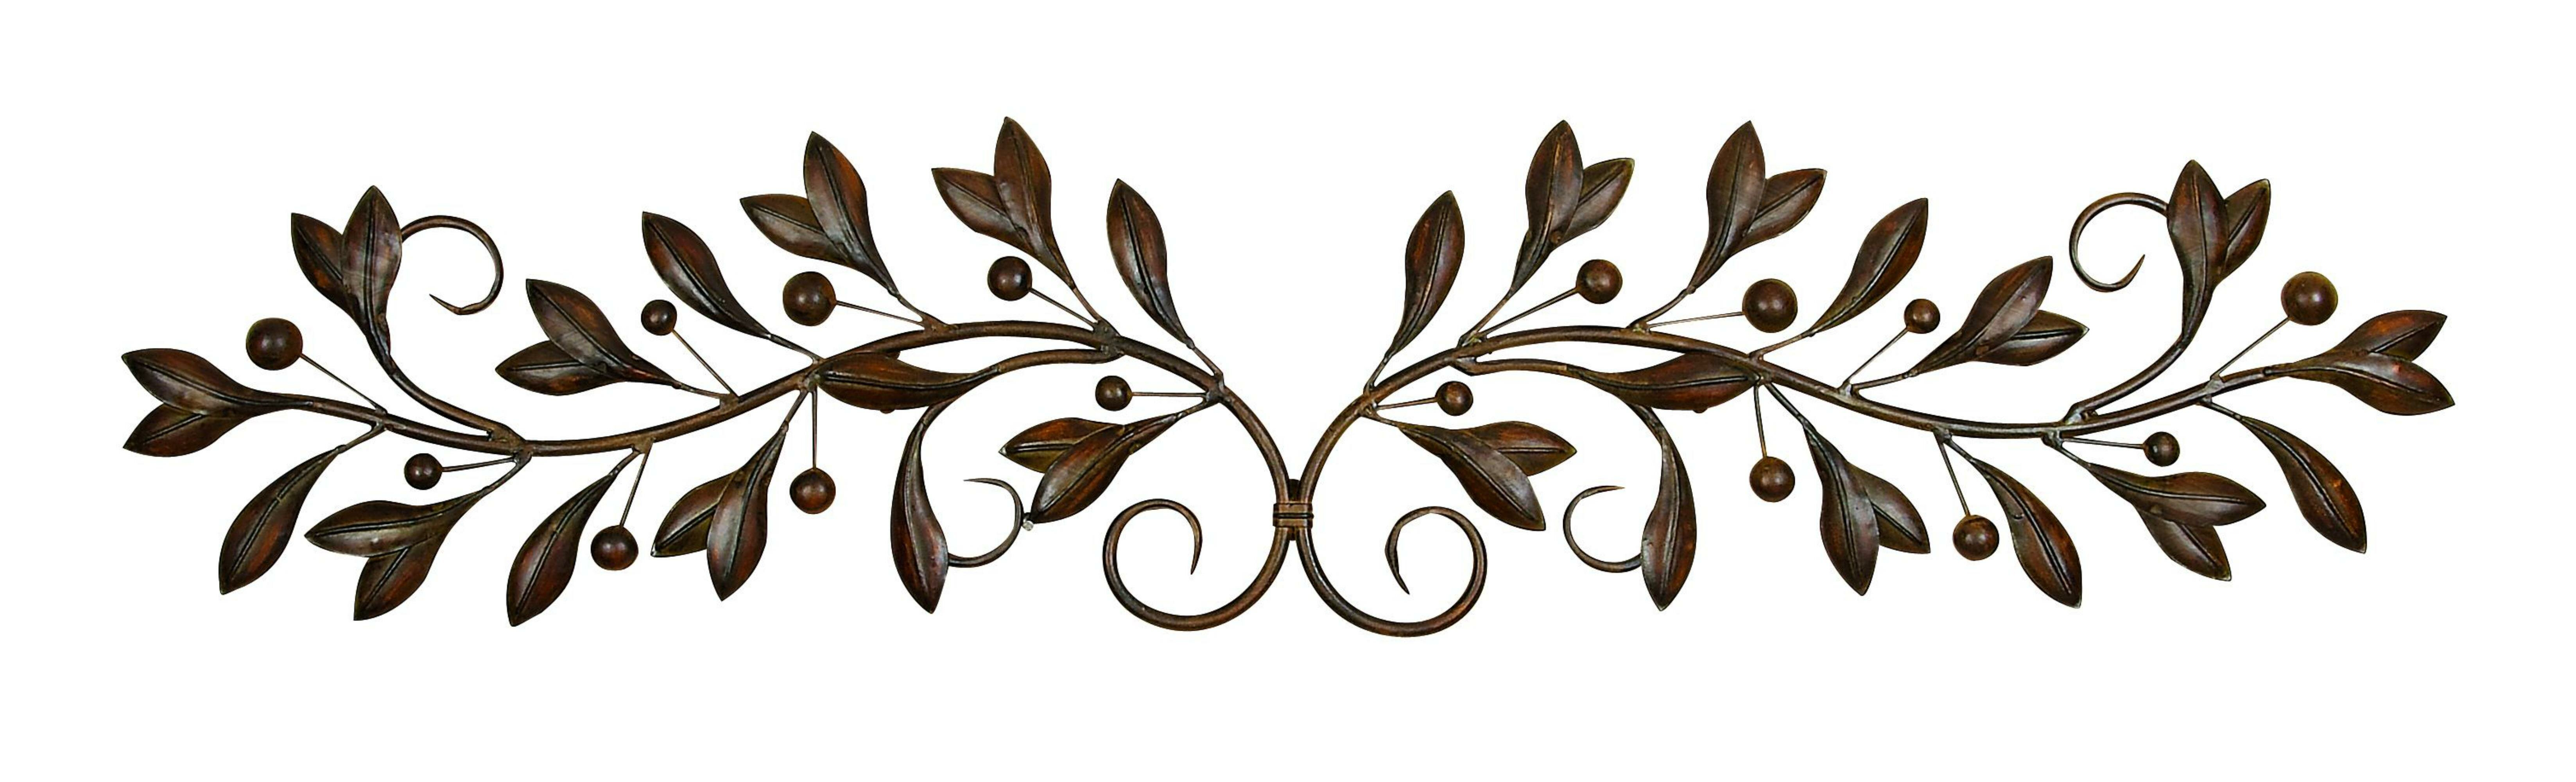 Scroll Framed Wall Décor Pertaining To Scroll Leaf Wall Decor (View 23 of 30)